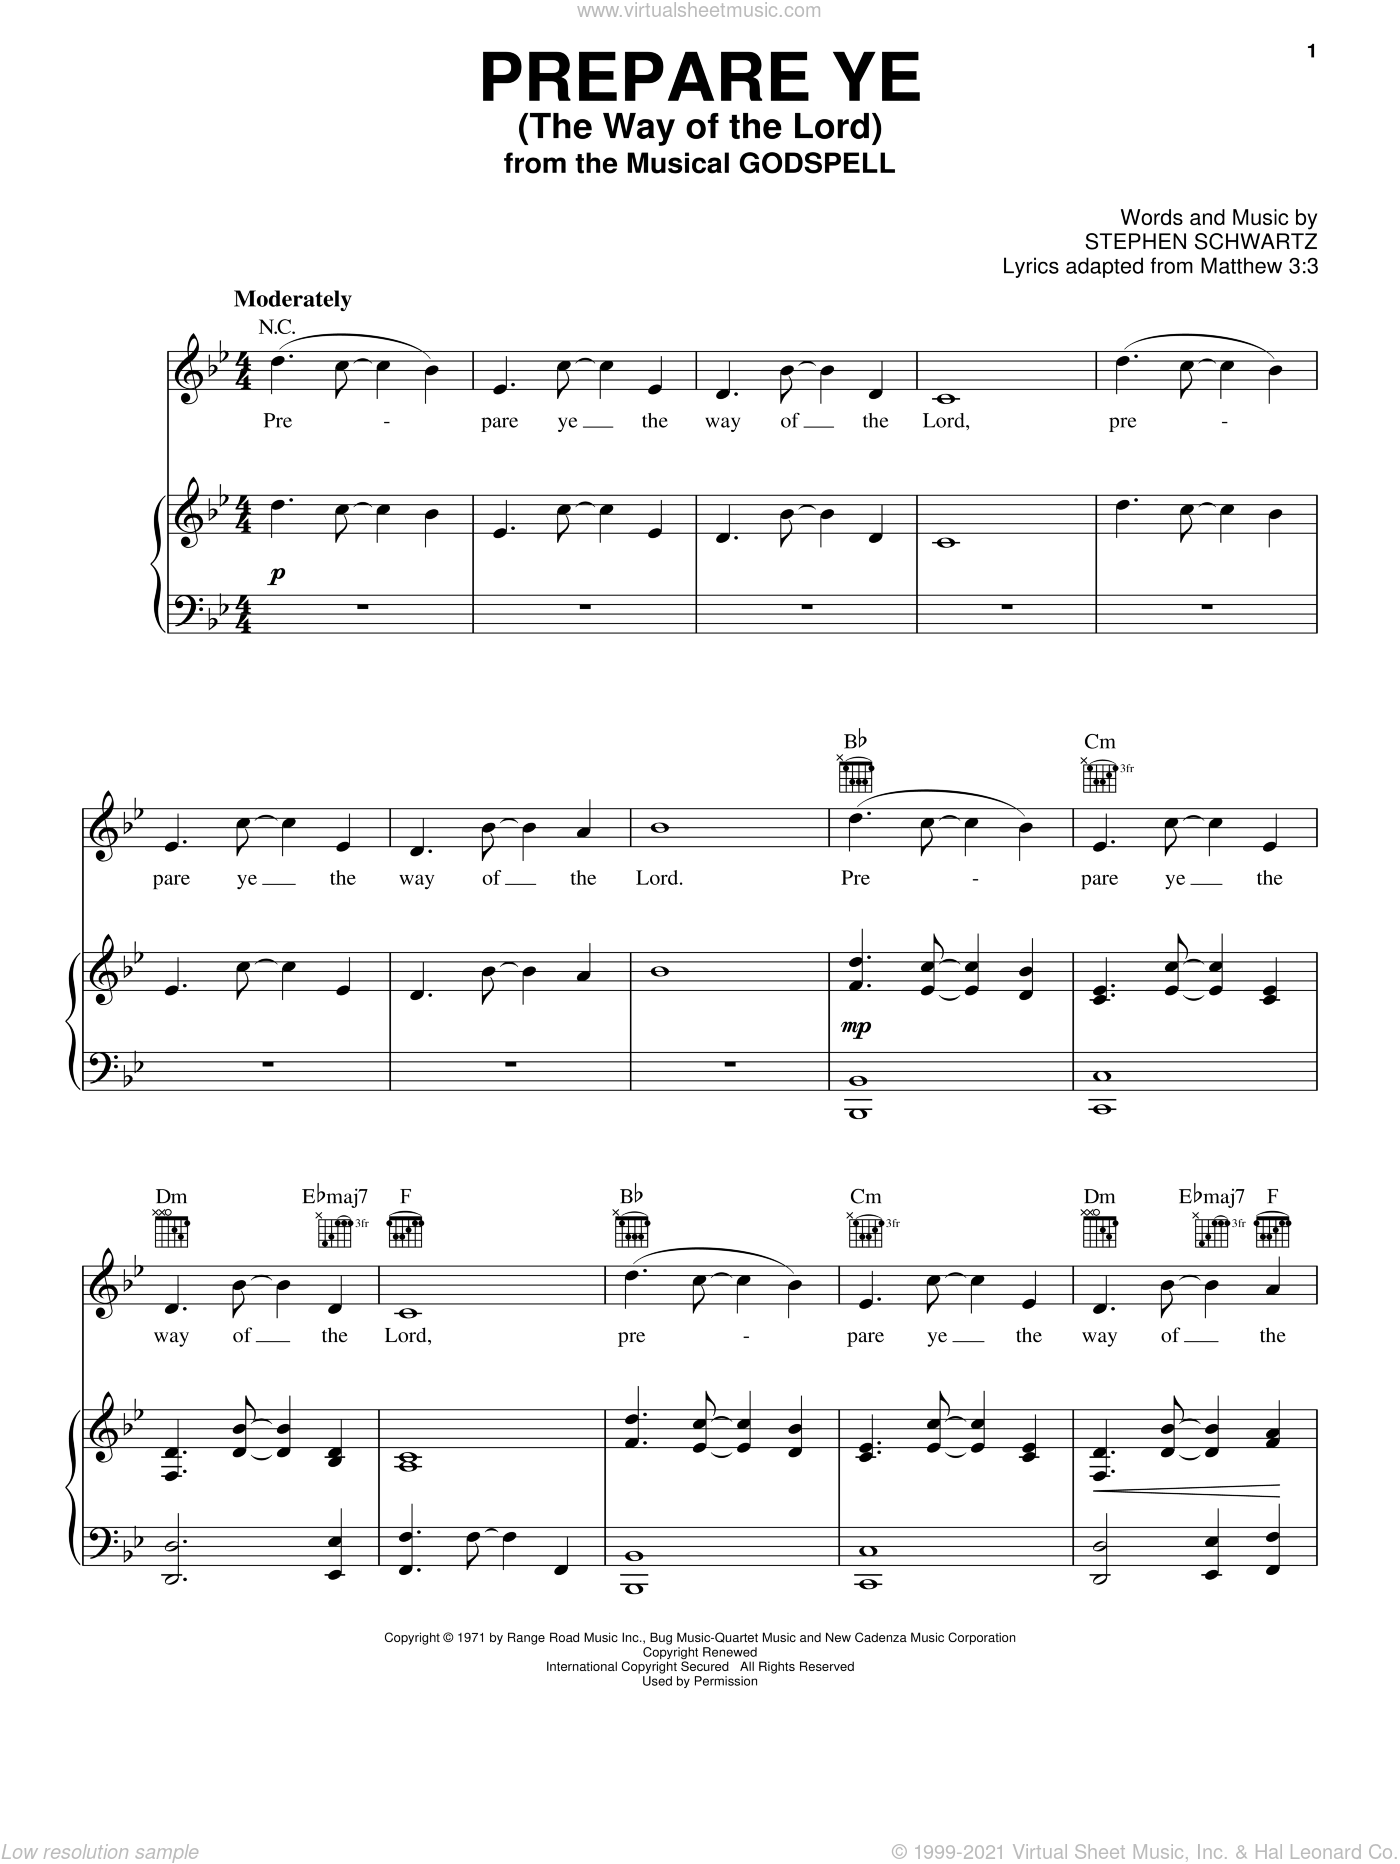 Prepare Ye (The Way Of The Lord) sheet music for voice, piano or guitar by Stephen Schwartz, intermediate voice, piano or guitar. Score Image Preview.